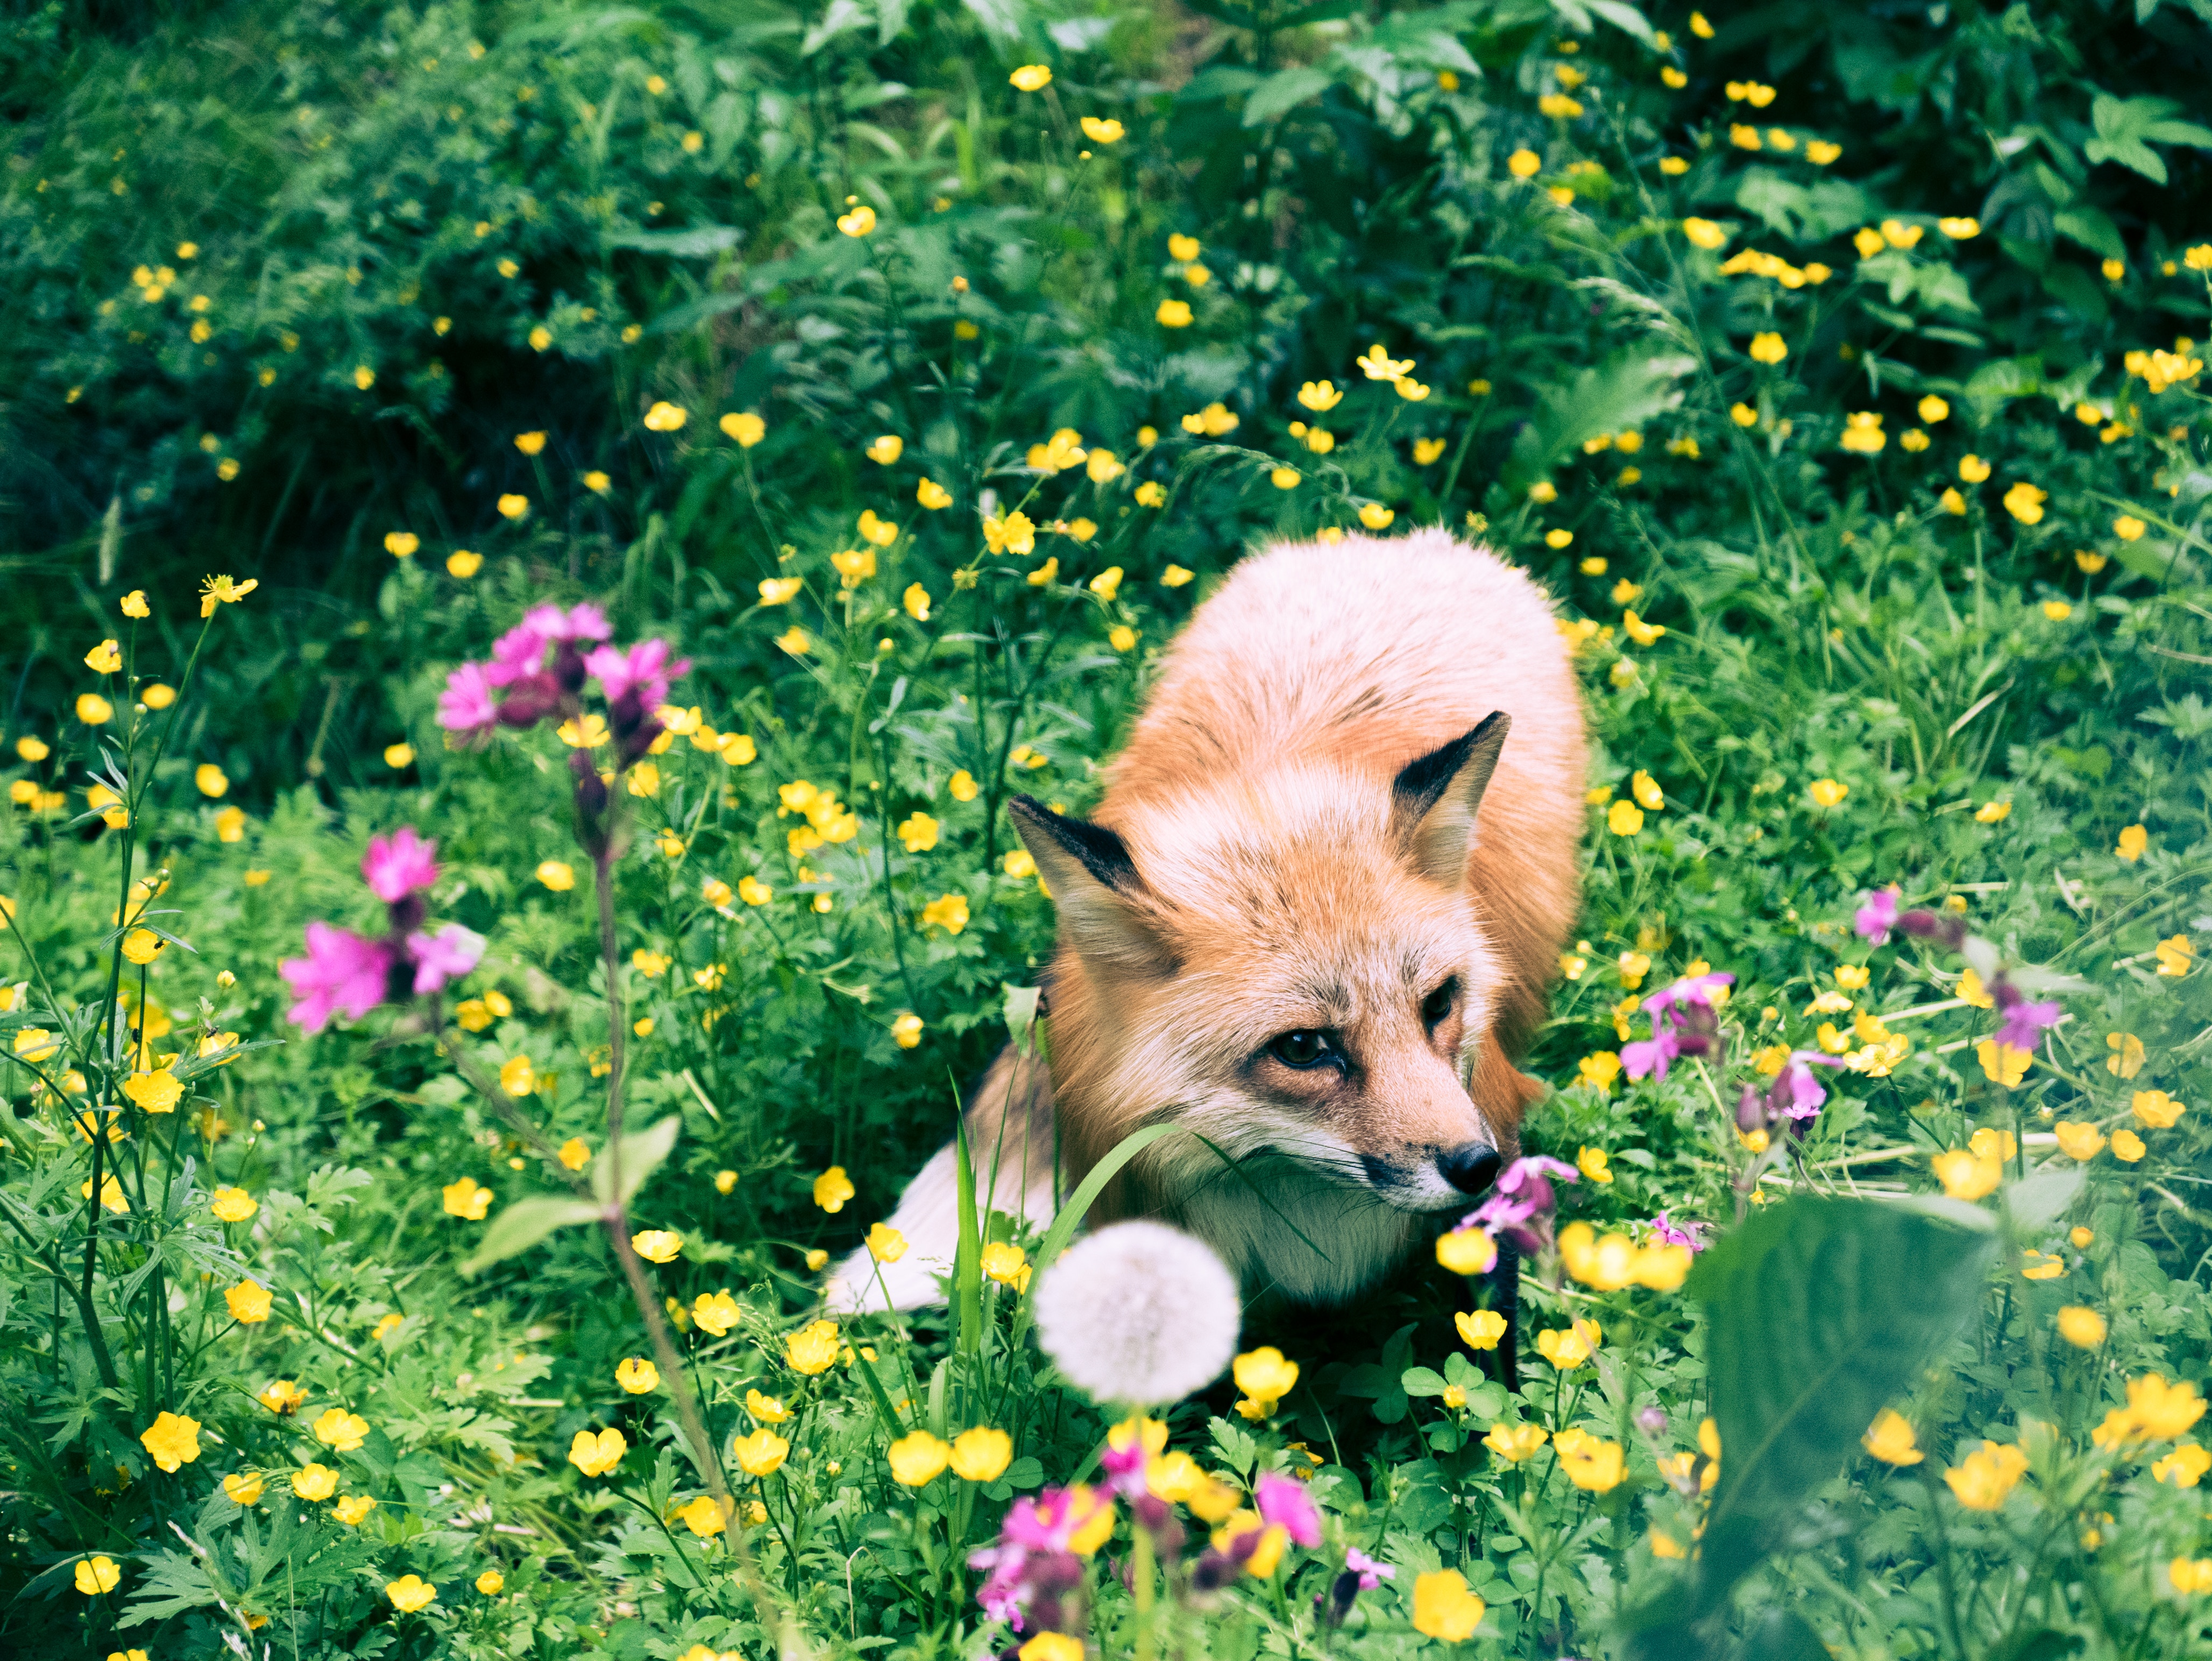 74037 download wallpaper Animals, Fox, Grass, Wildlife, Beast, Flowers screensavers and pictures for free